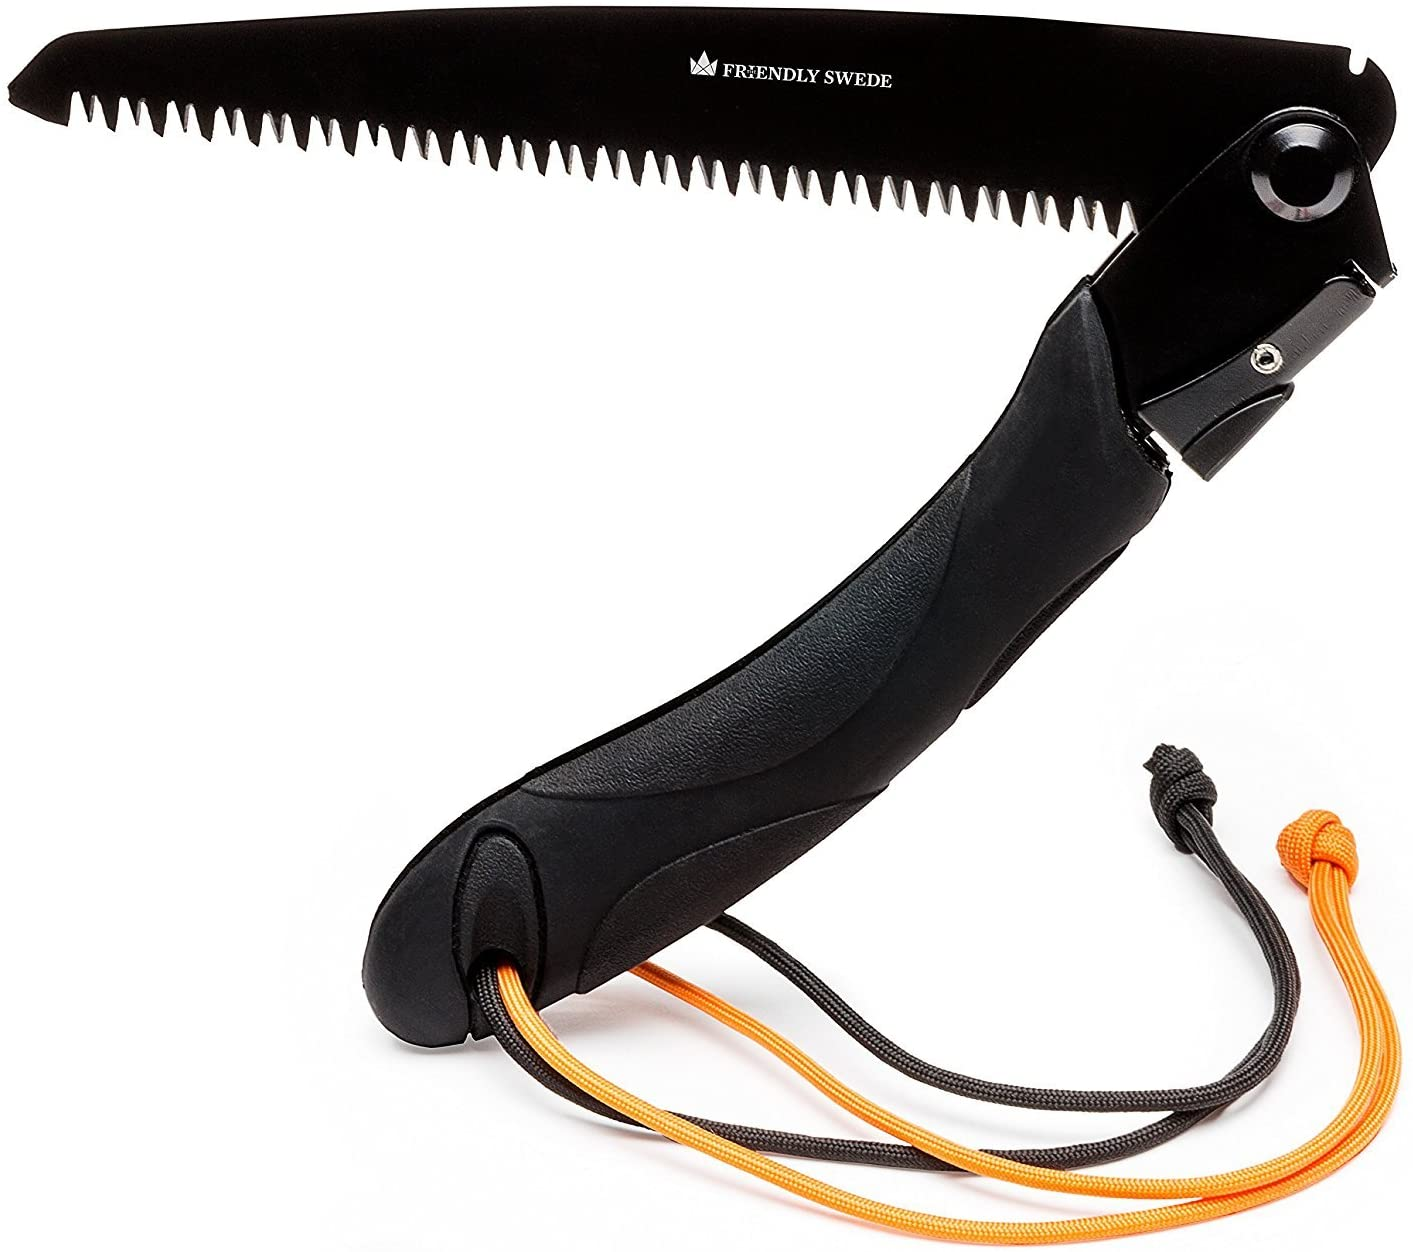 The Friendly Swede Folding Hand Saw